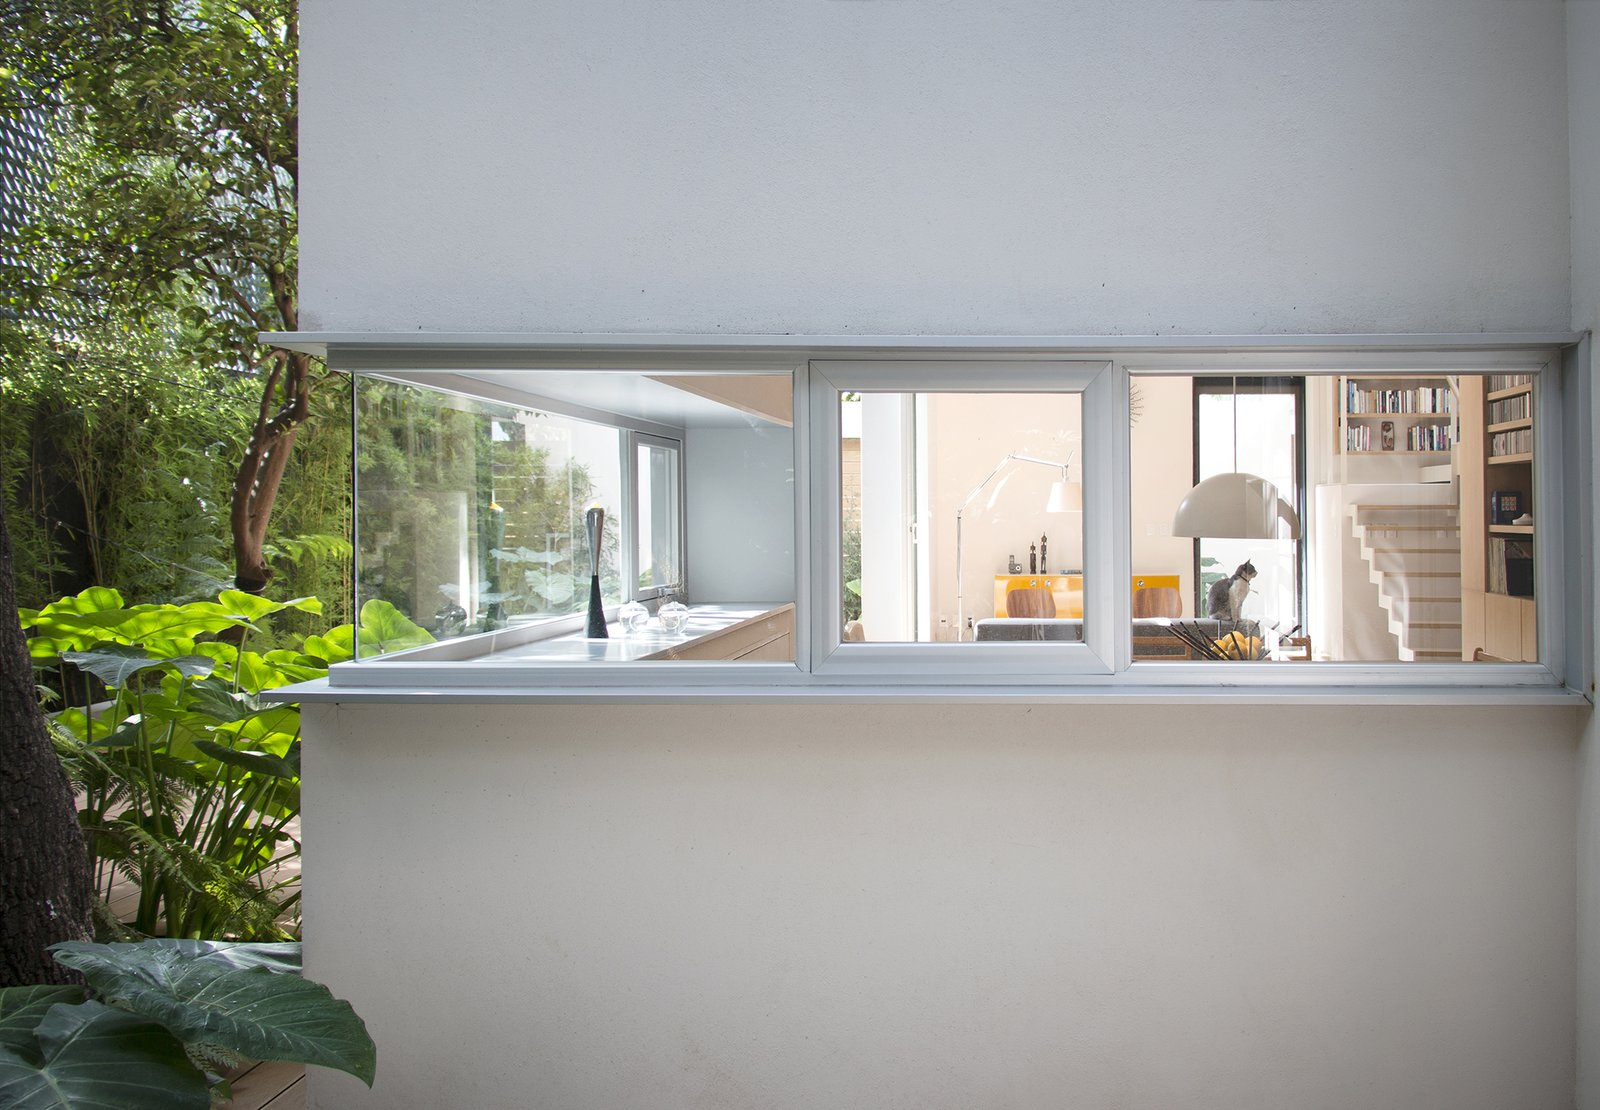 When Mexico City residents Nina Wanderstok and Raúl Cremoux were ready for a smaller house, they turned to their son, architect Paul Cremoux. The two-story structure he designed preserves open space on the property to support groundwater recharge in accordance with strict local zoning regulations. Retired Couple Build Modern in Mexico City - Photo 2 of 13